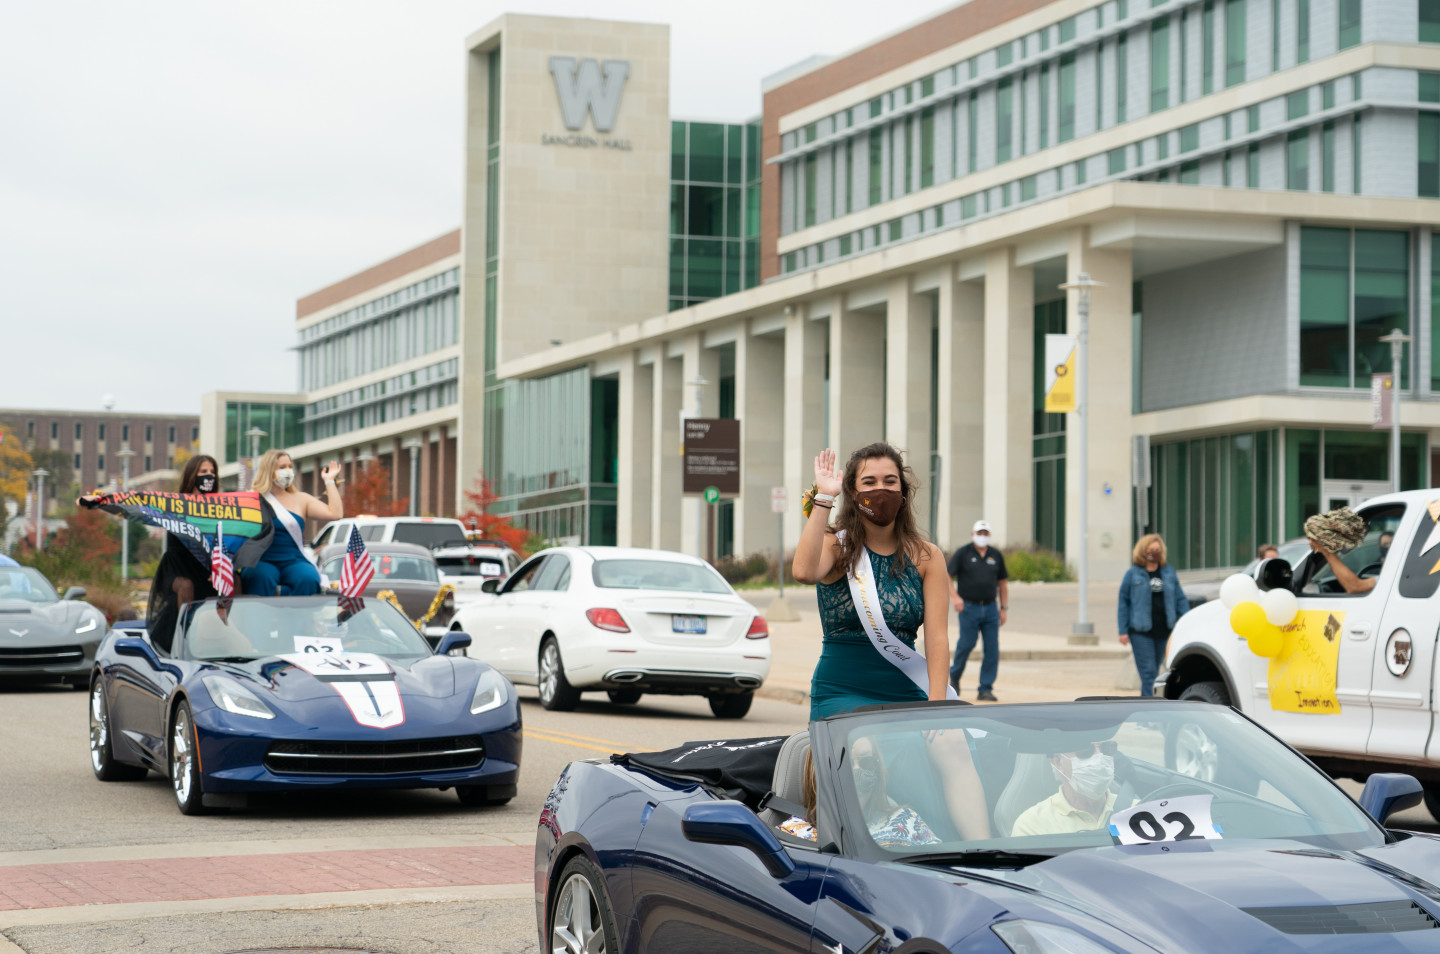 Members of the Homecoming Court ride in convertibles by Sangren Hall.